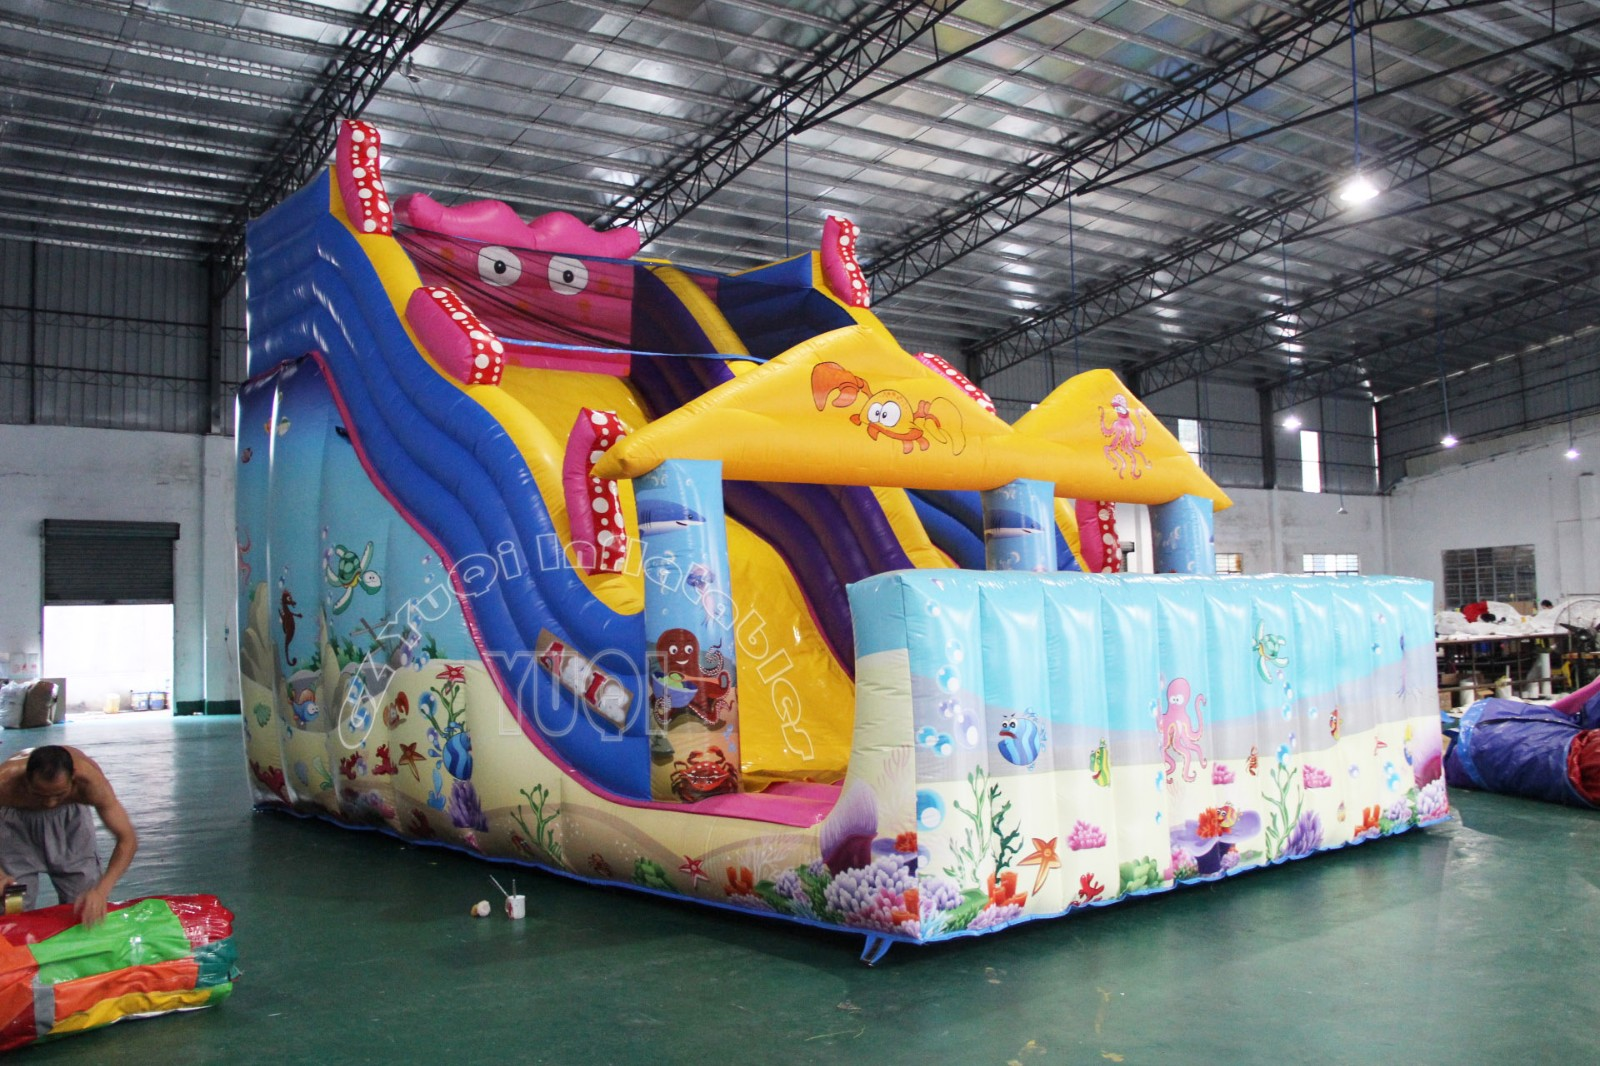 YUQI-Yq19 New Style Sewing Pvc Inflatable Water Slide Giant Inflatable